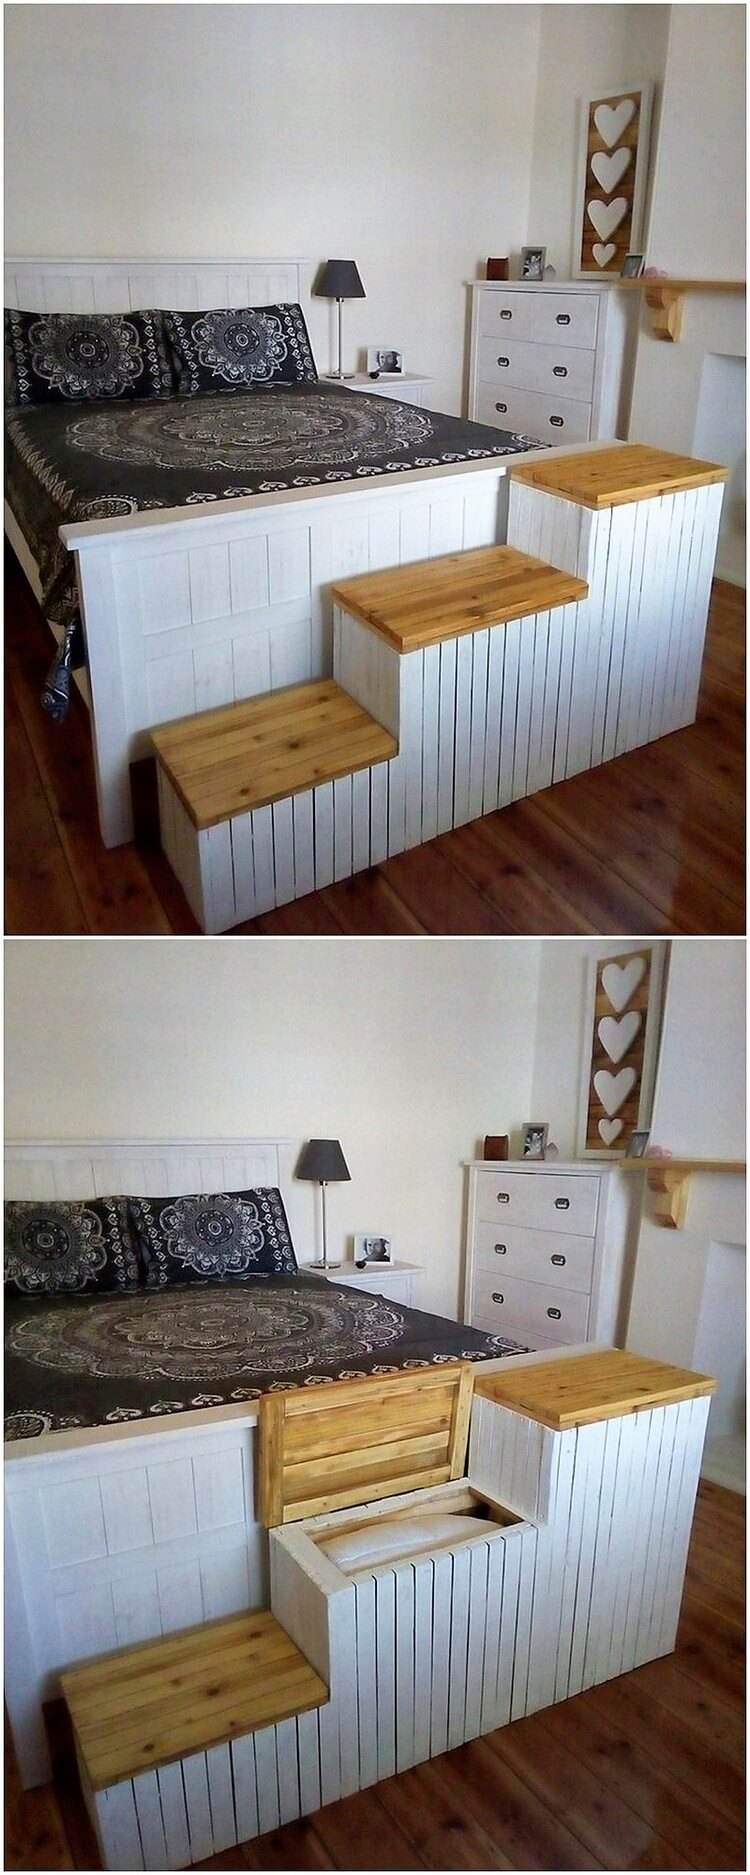 Pallet Bed with Stairs